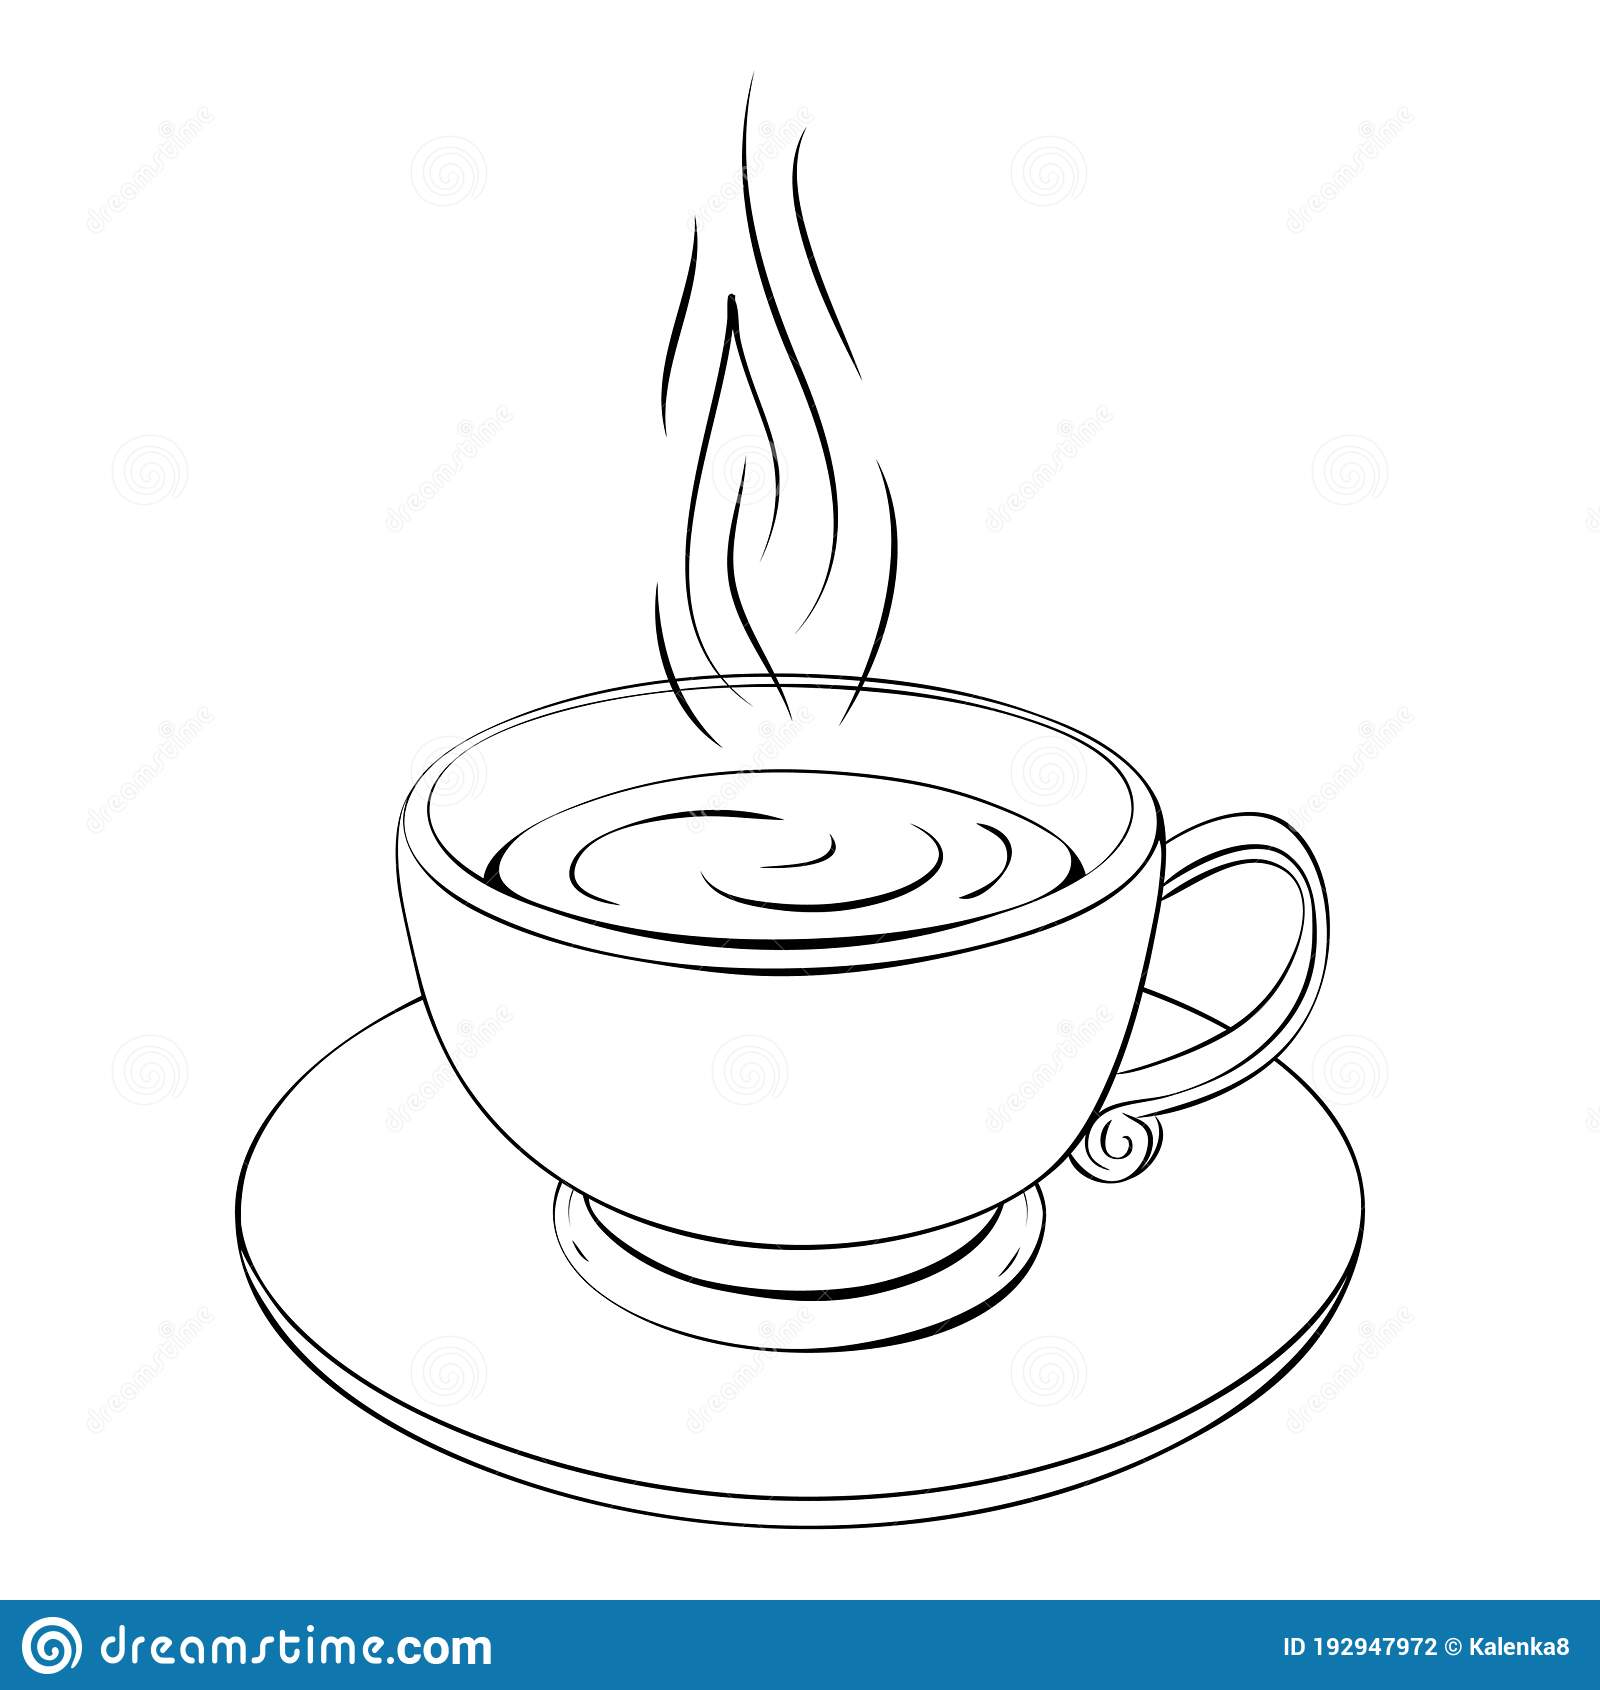 Hot Coffee Cup Or Teacup Line Drawing Isolated On White Coffee Break Or Tea Sketch Icon Outline Illustration Of One Stock Vector Illustration Of Cute Line 192947972